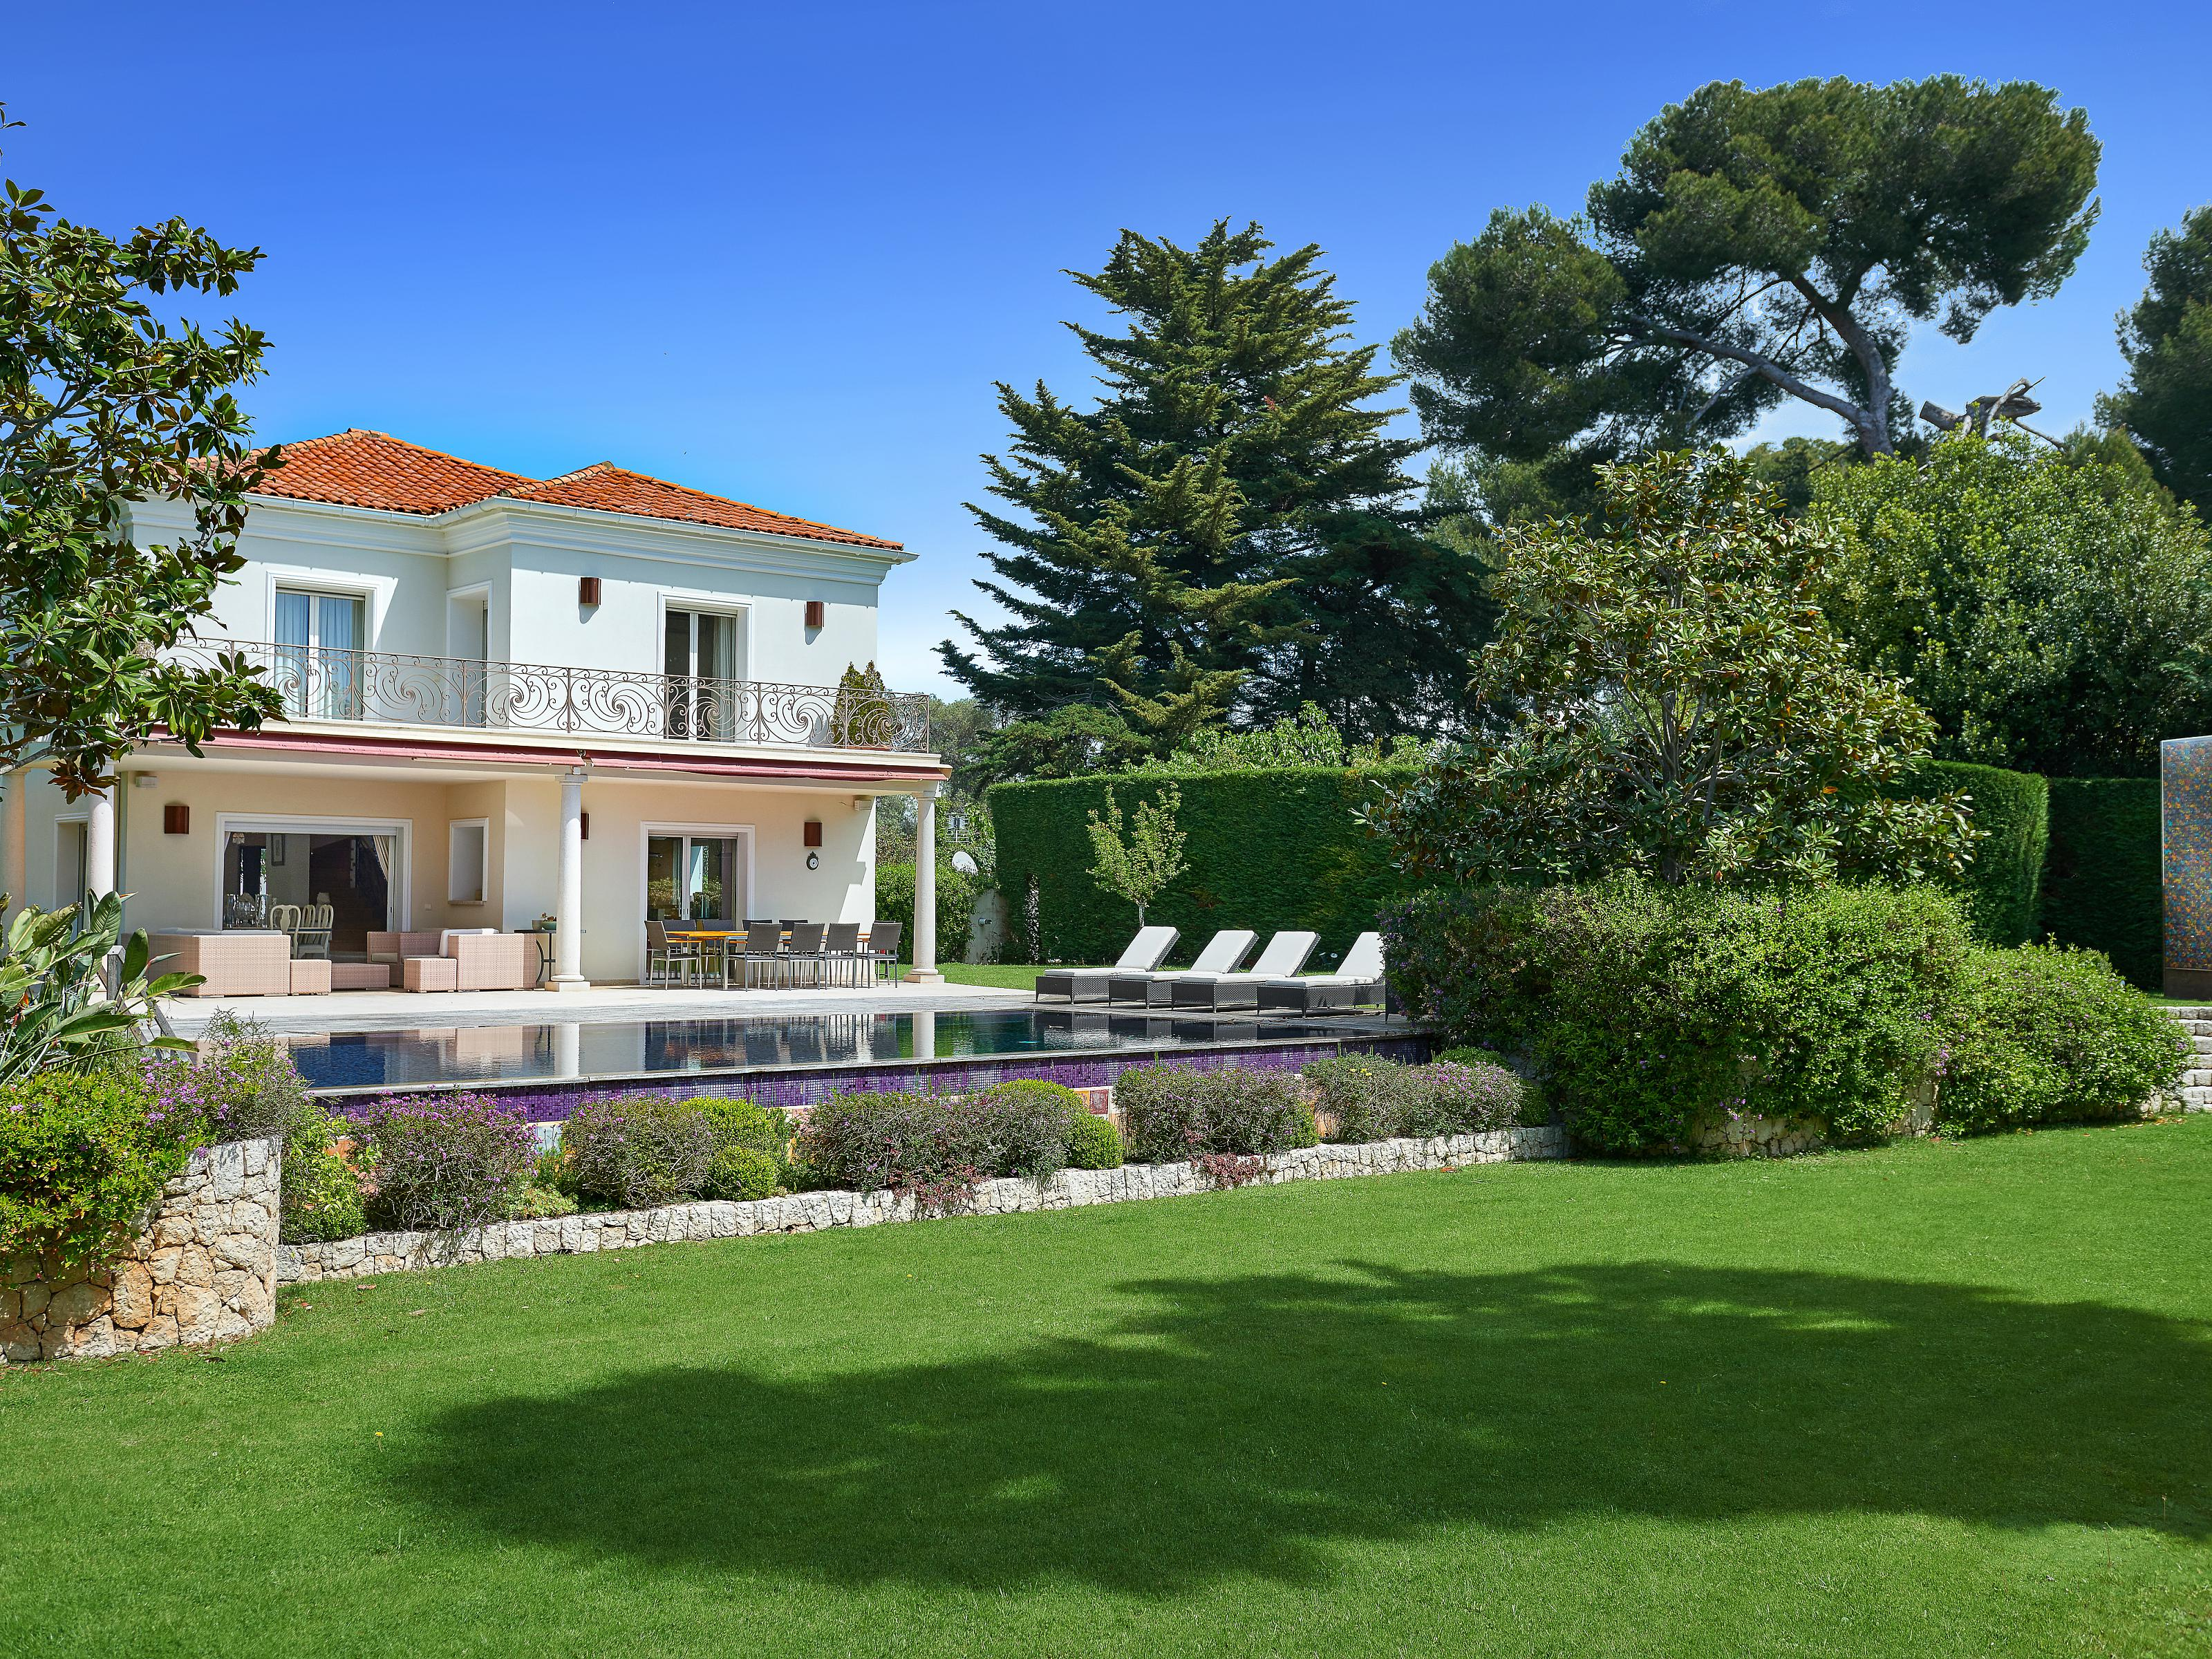 Single Family Home for Sale at Magnificent Mediterranean villa located on the Cap d'Antibes Cap D'Antibes, Provence-Alpes-Cote D'Azur 06160 France